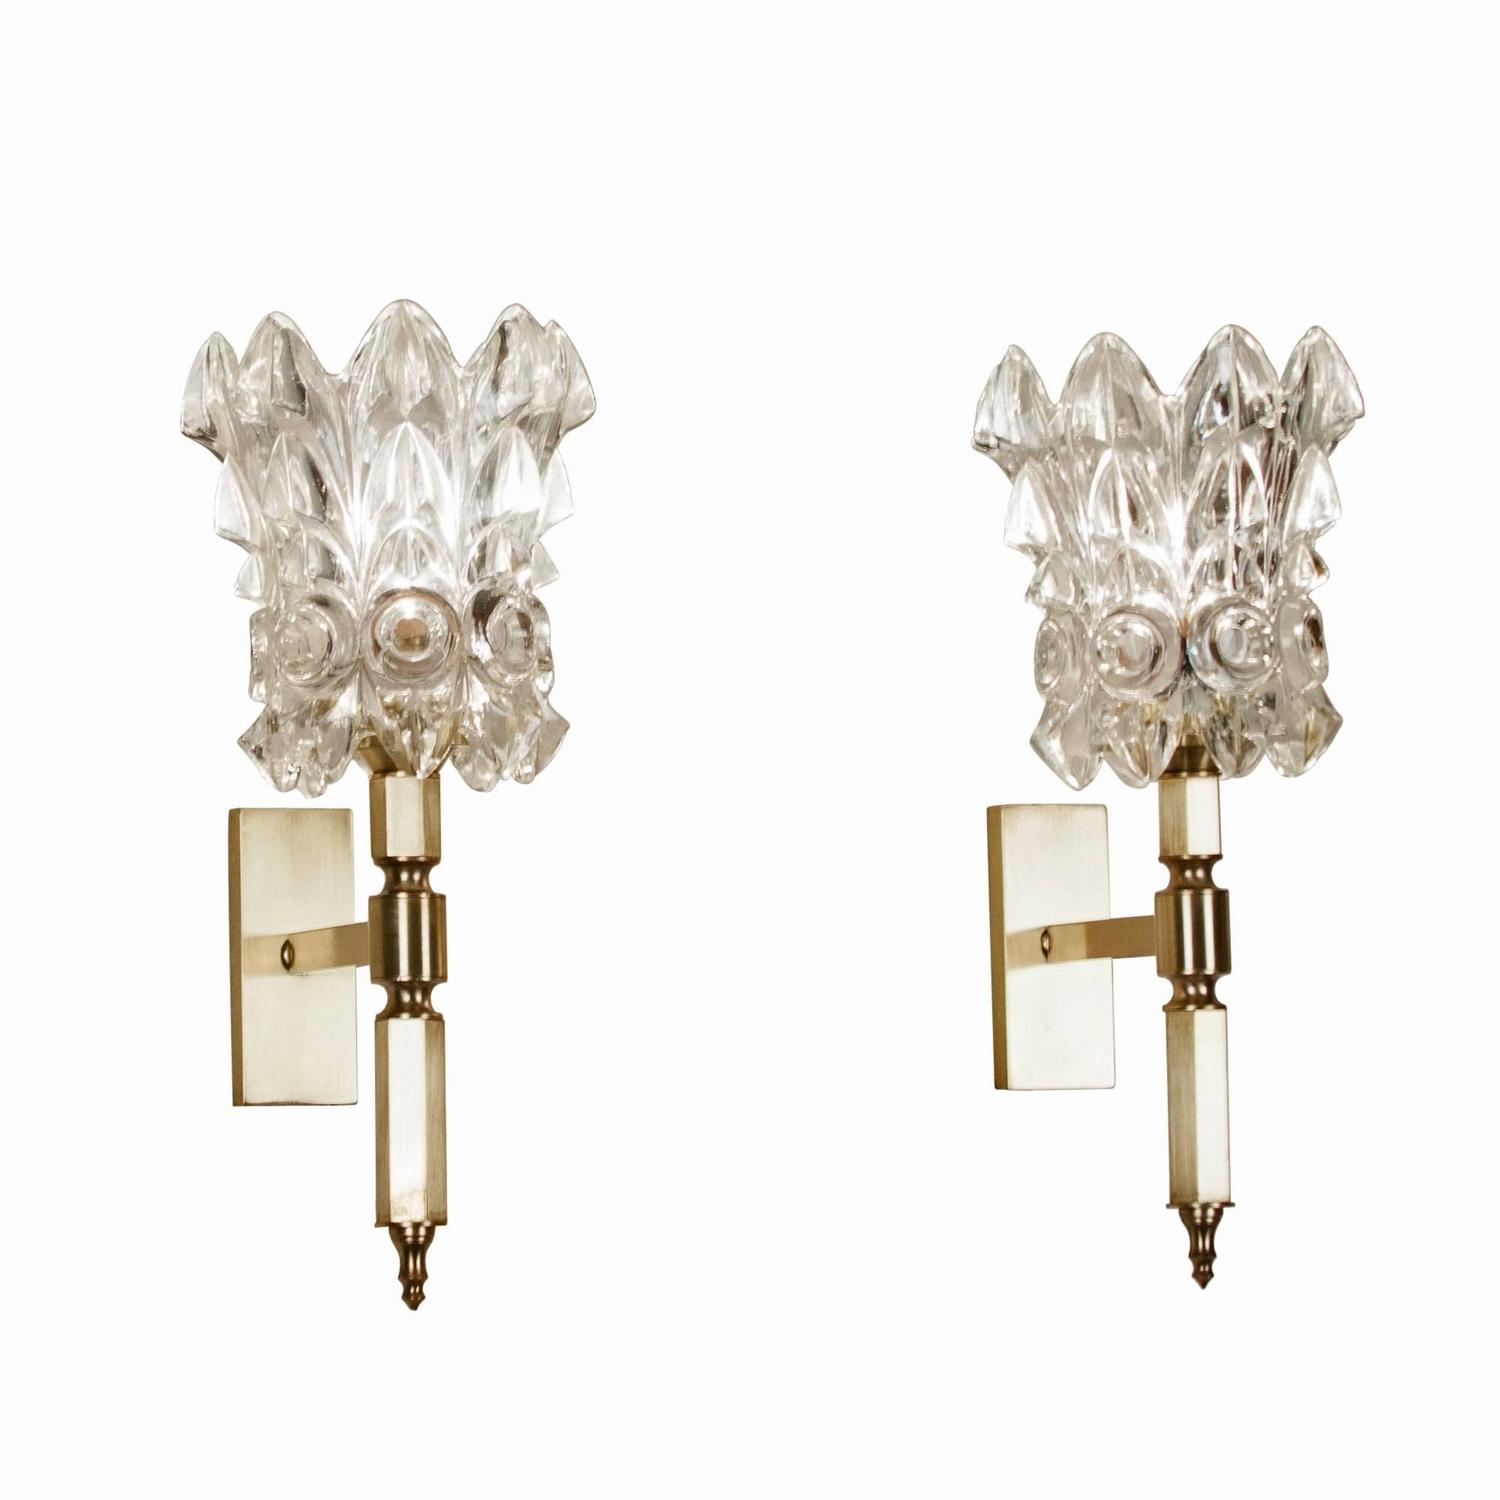 Pair of Faceted Crystal Wall Sconces, Italian 1960s at 1stdibs